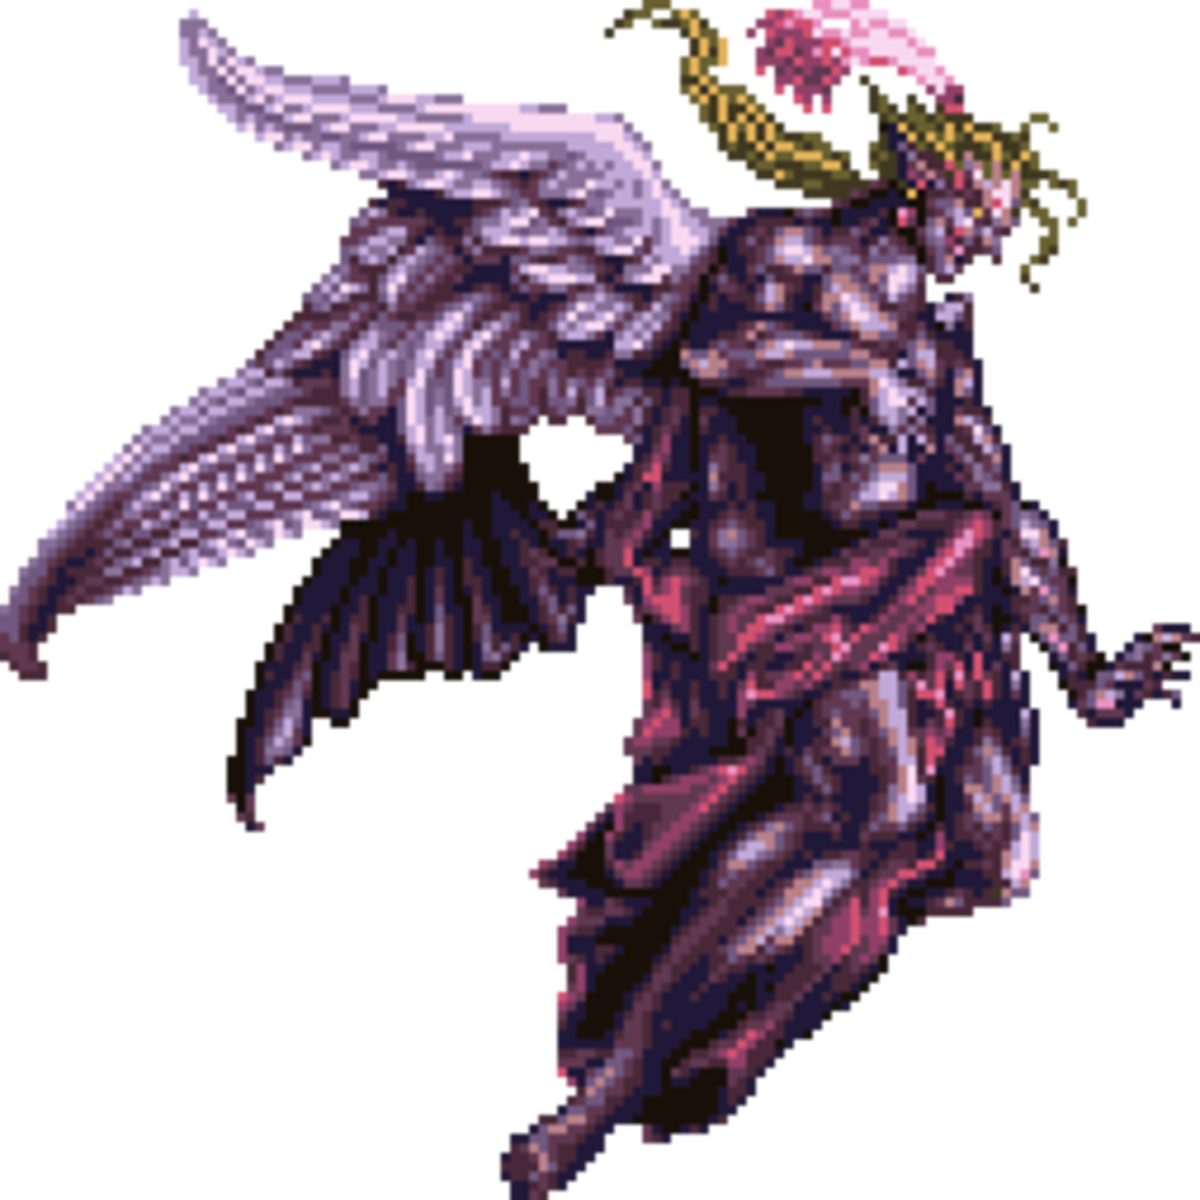 Kefka's final form from Final Fantasy VI (SNES).